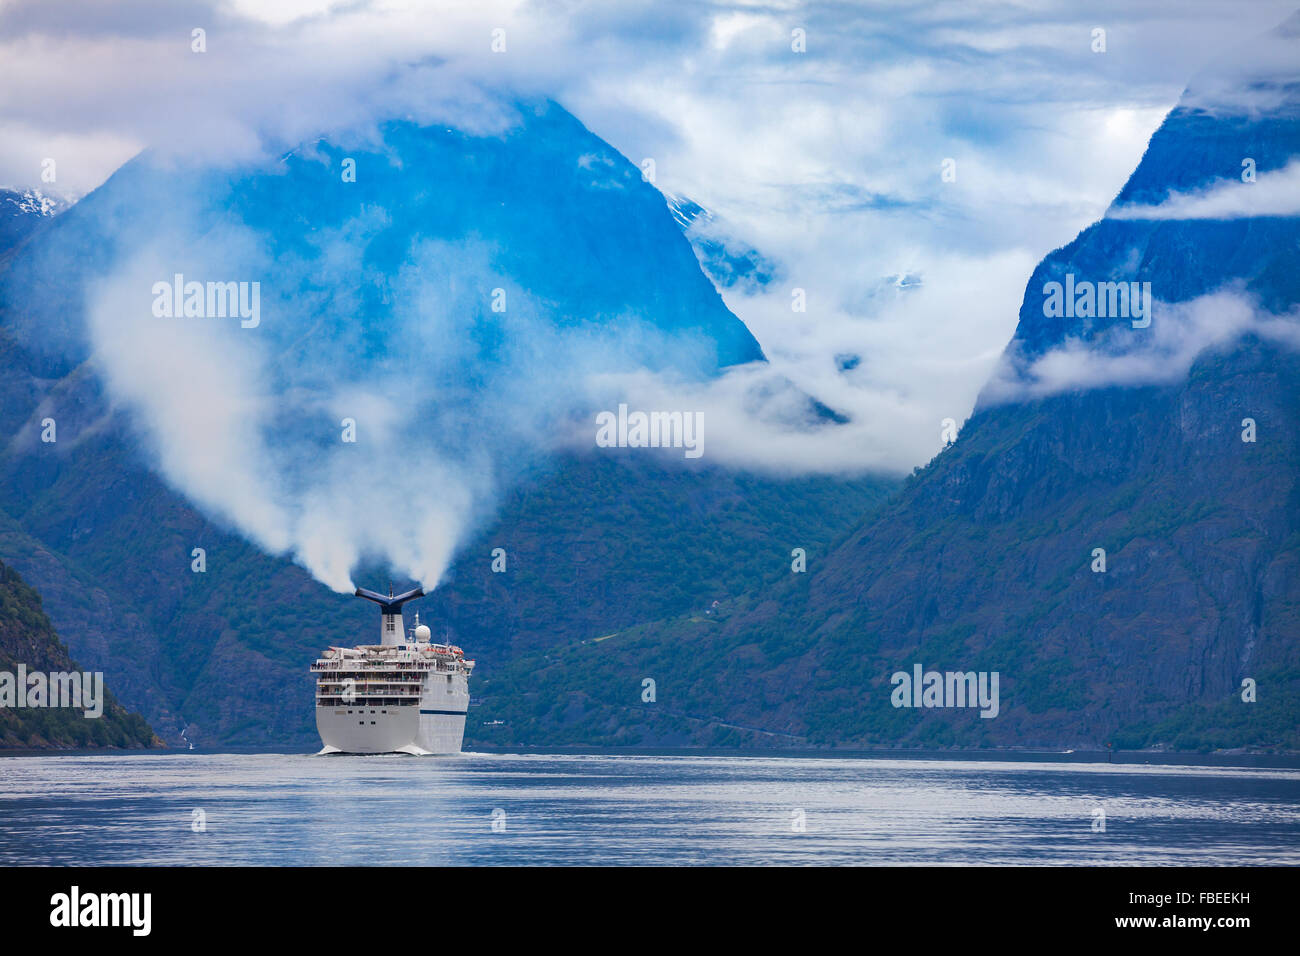 Cruise Ship, Cruise Liners On Hardanger fjorden, Norway - Stock Image